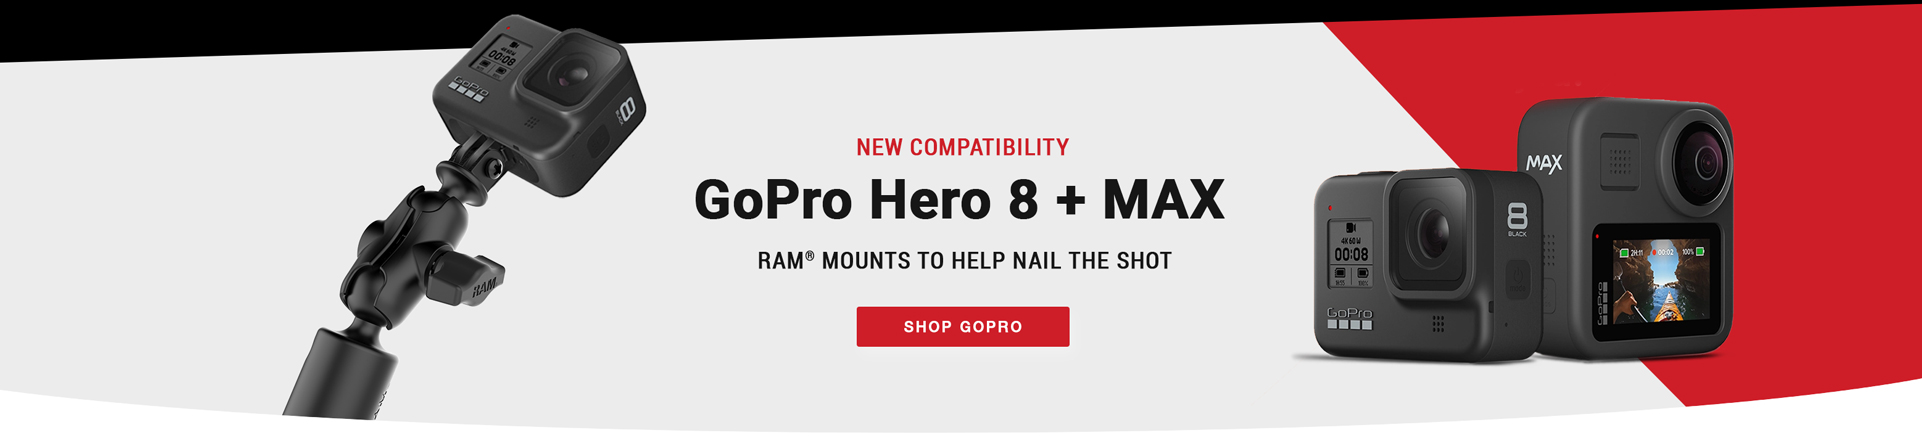 New comptability with GoPro Hero 8 + MAX